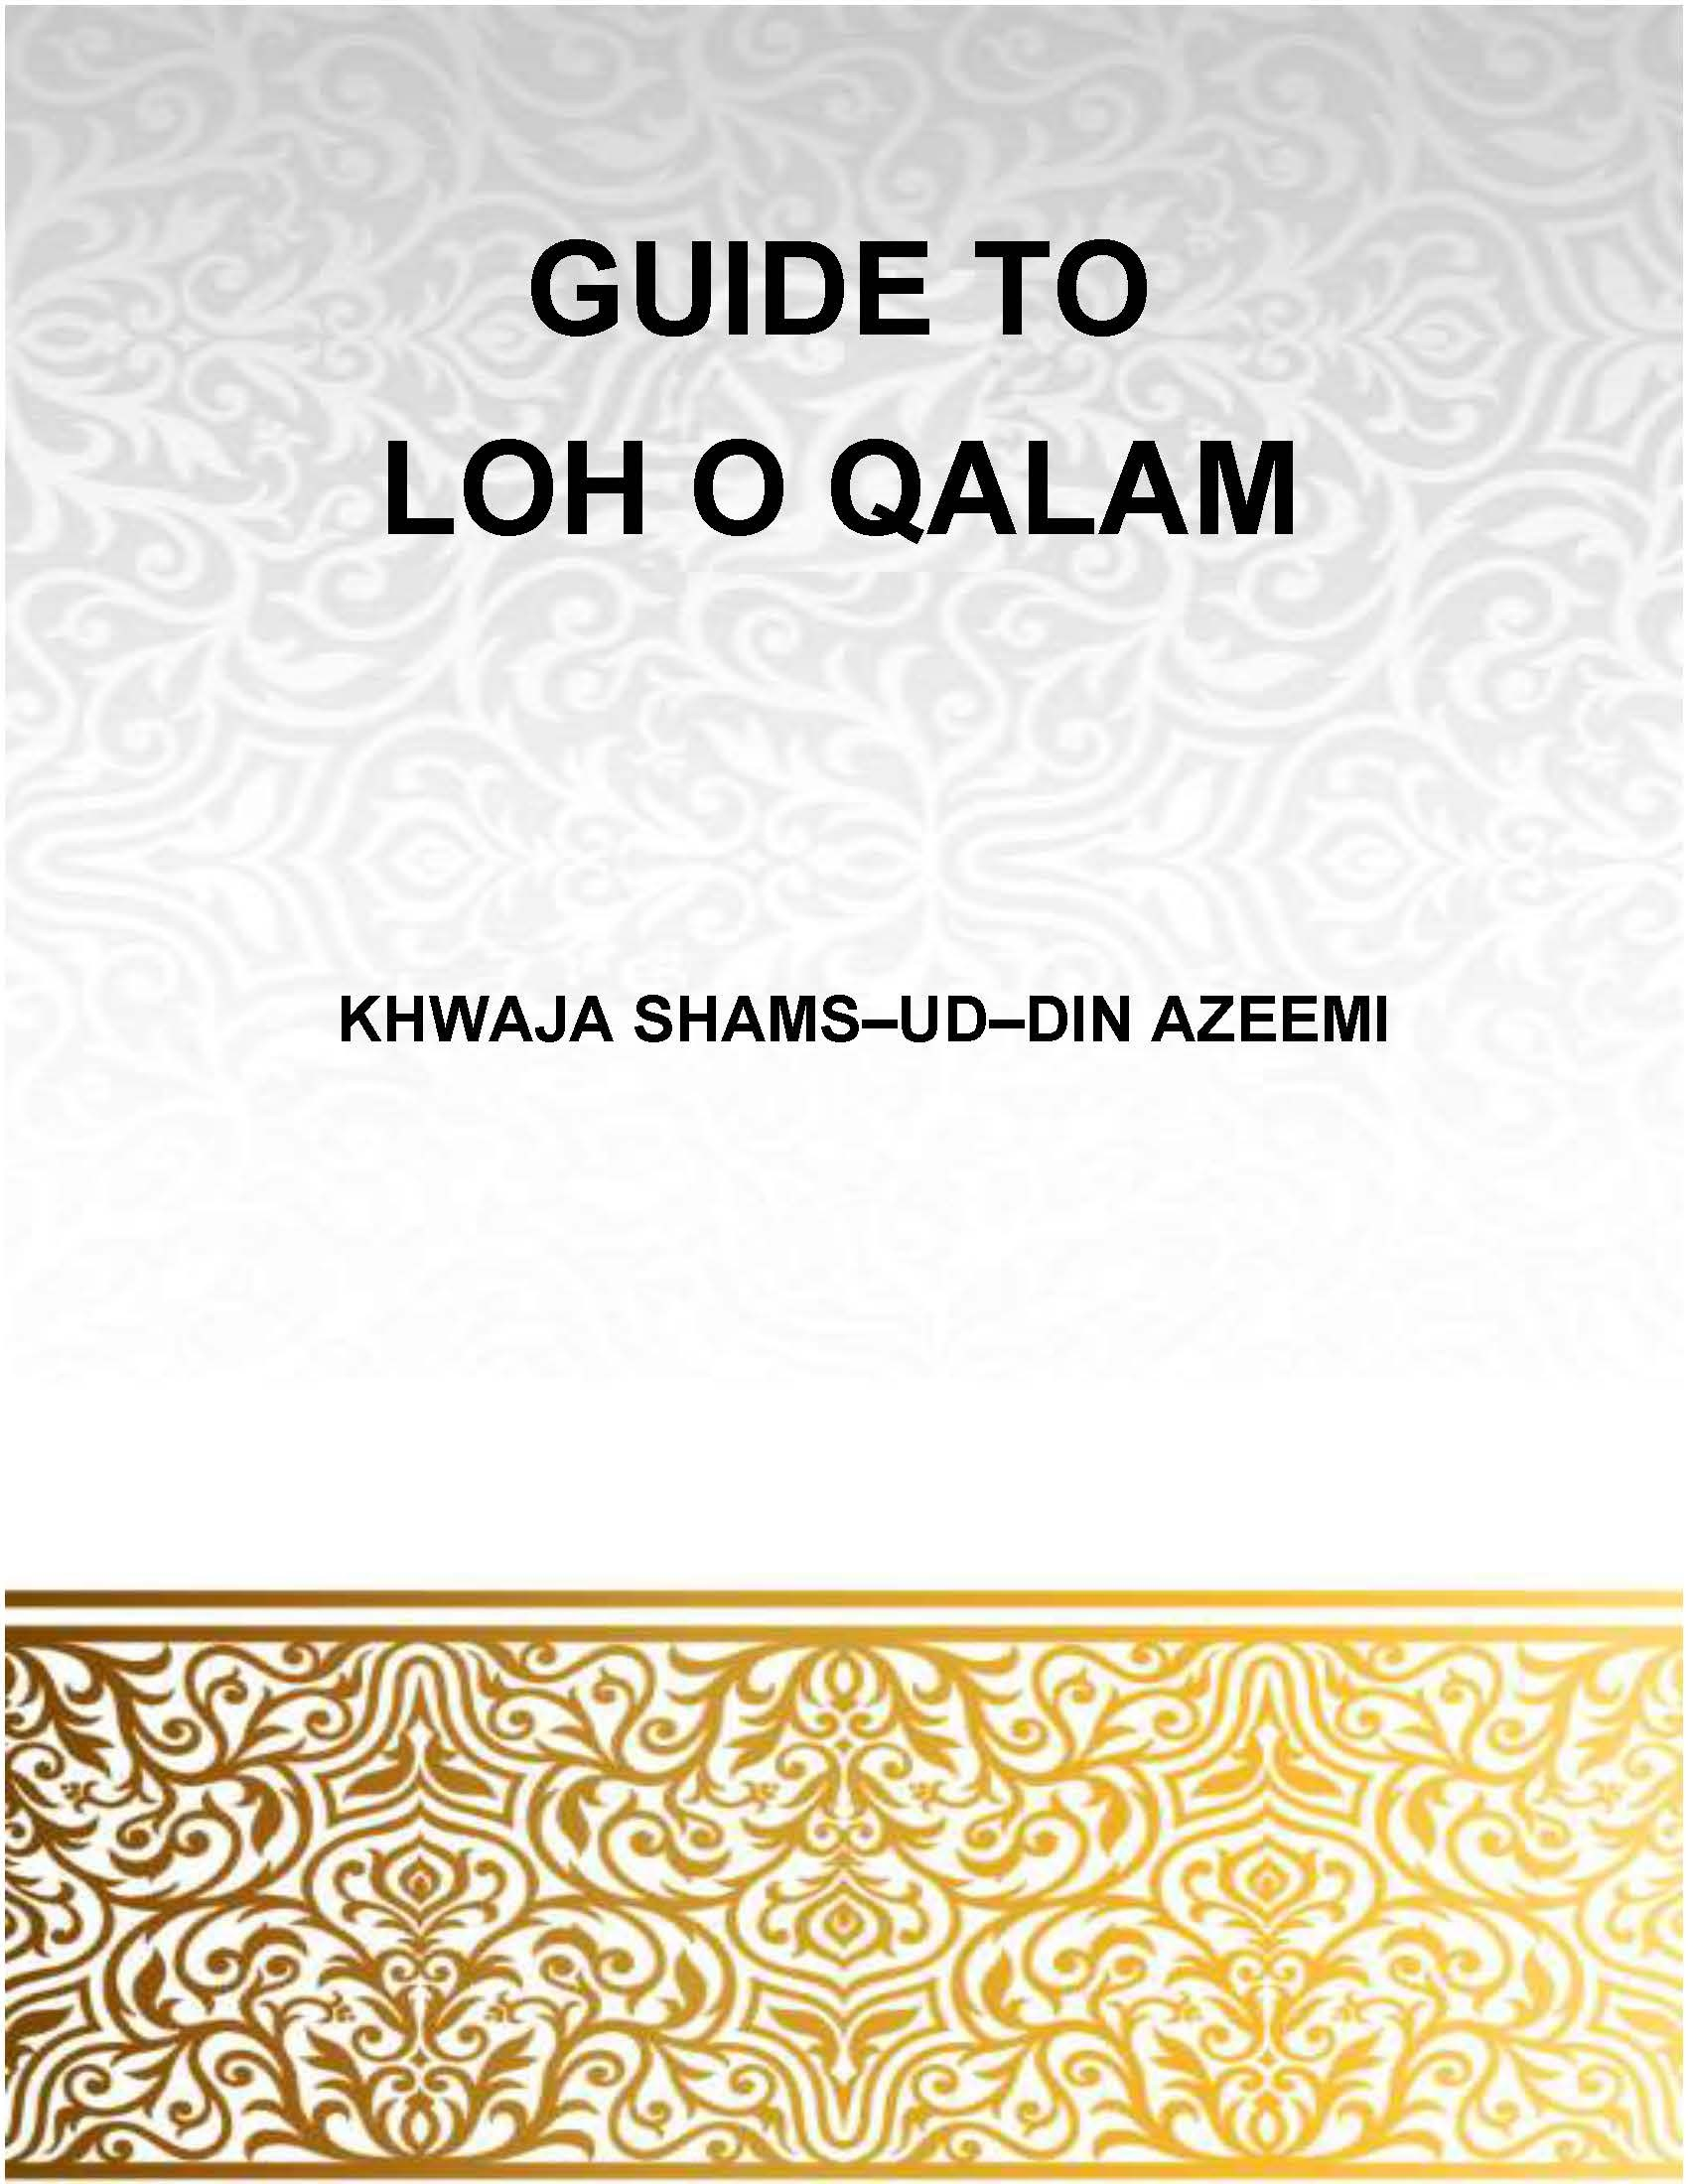 GUIDE TO LOH O QALAM